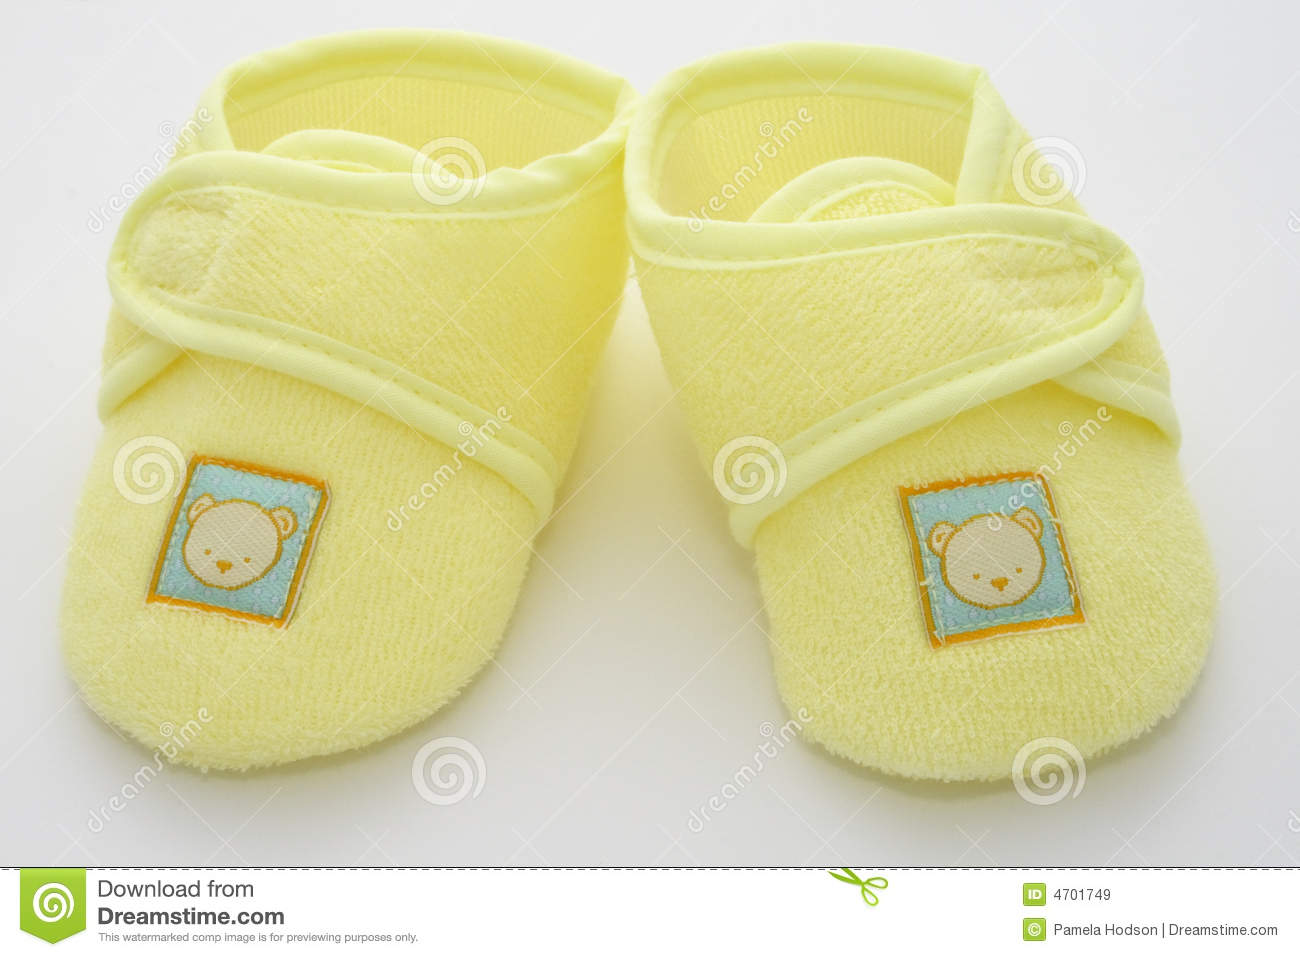 Babies First Shoes Royalty Free Stock Image